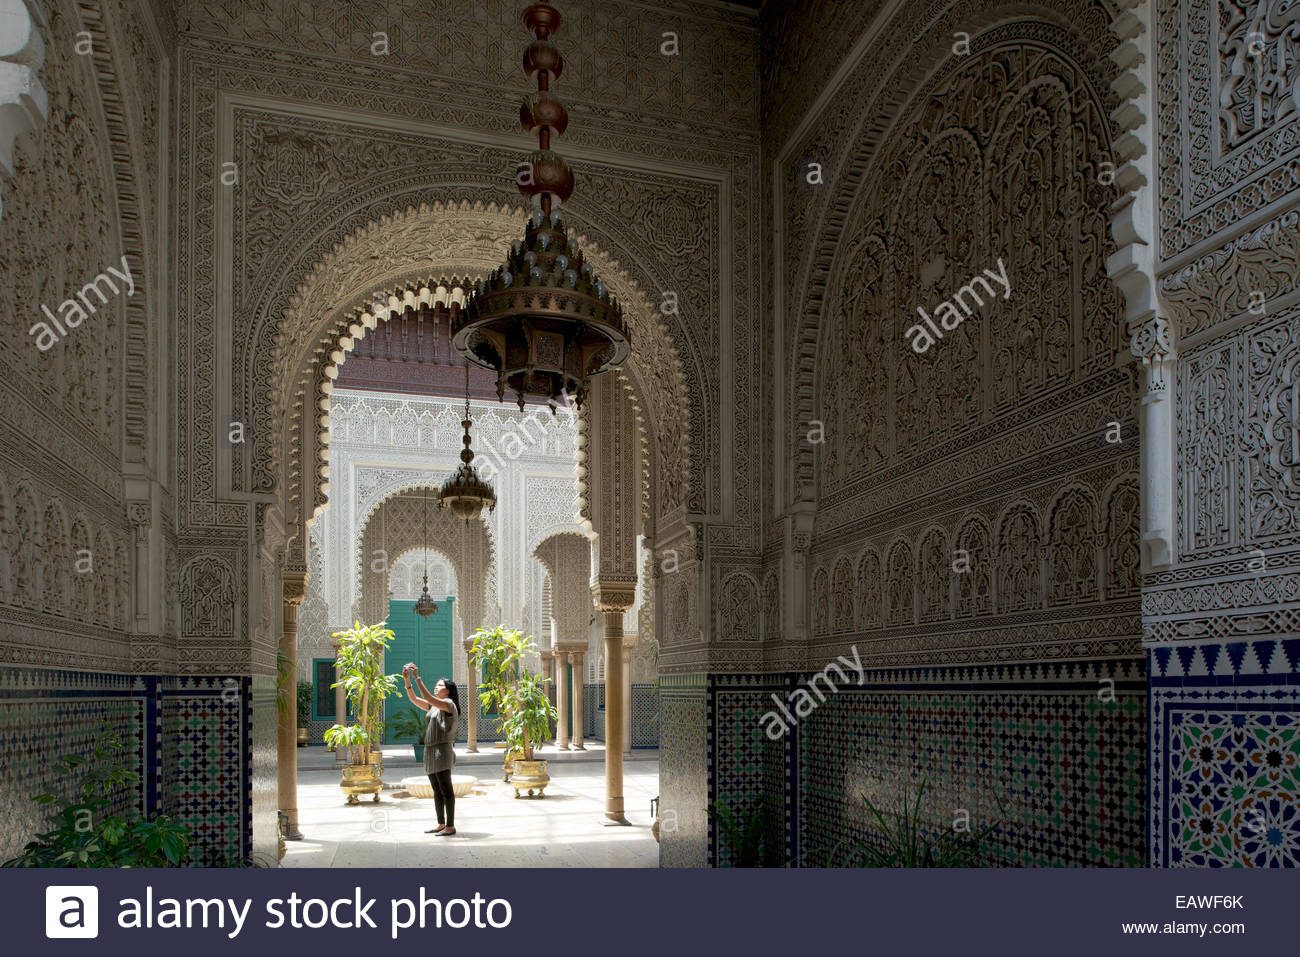 The richly decorated walls and arches of the Mahkama du Pacha. - Stock Image